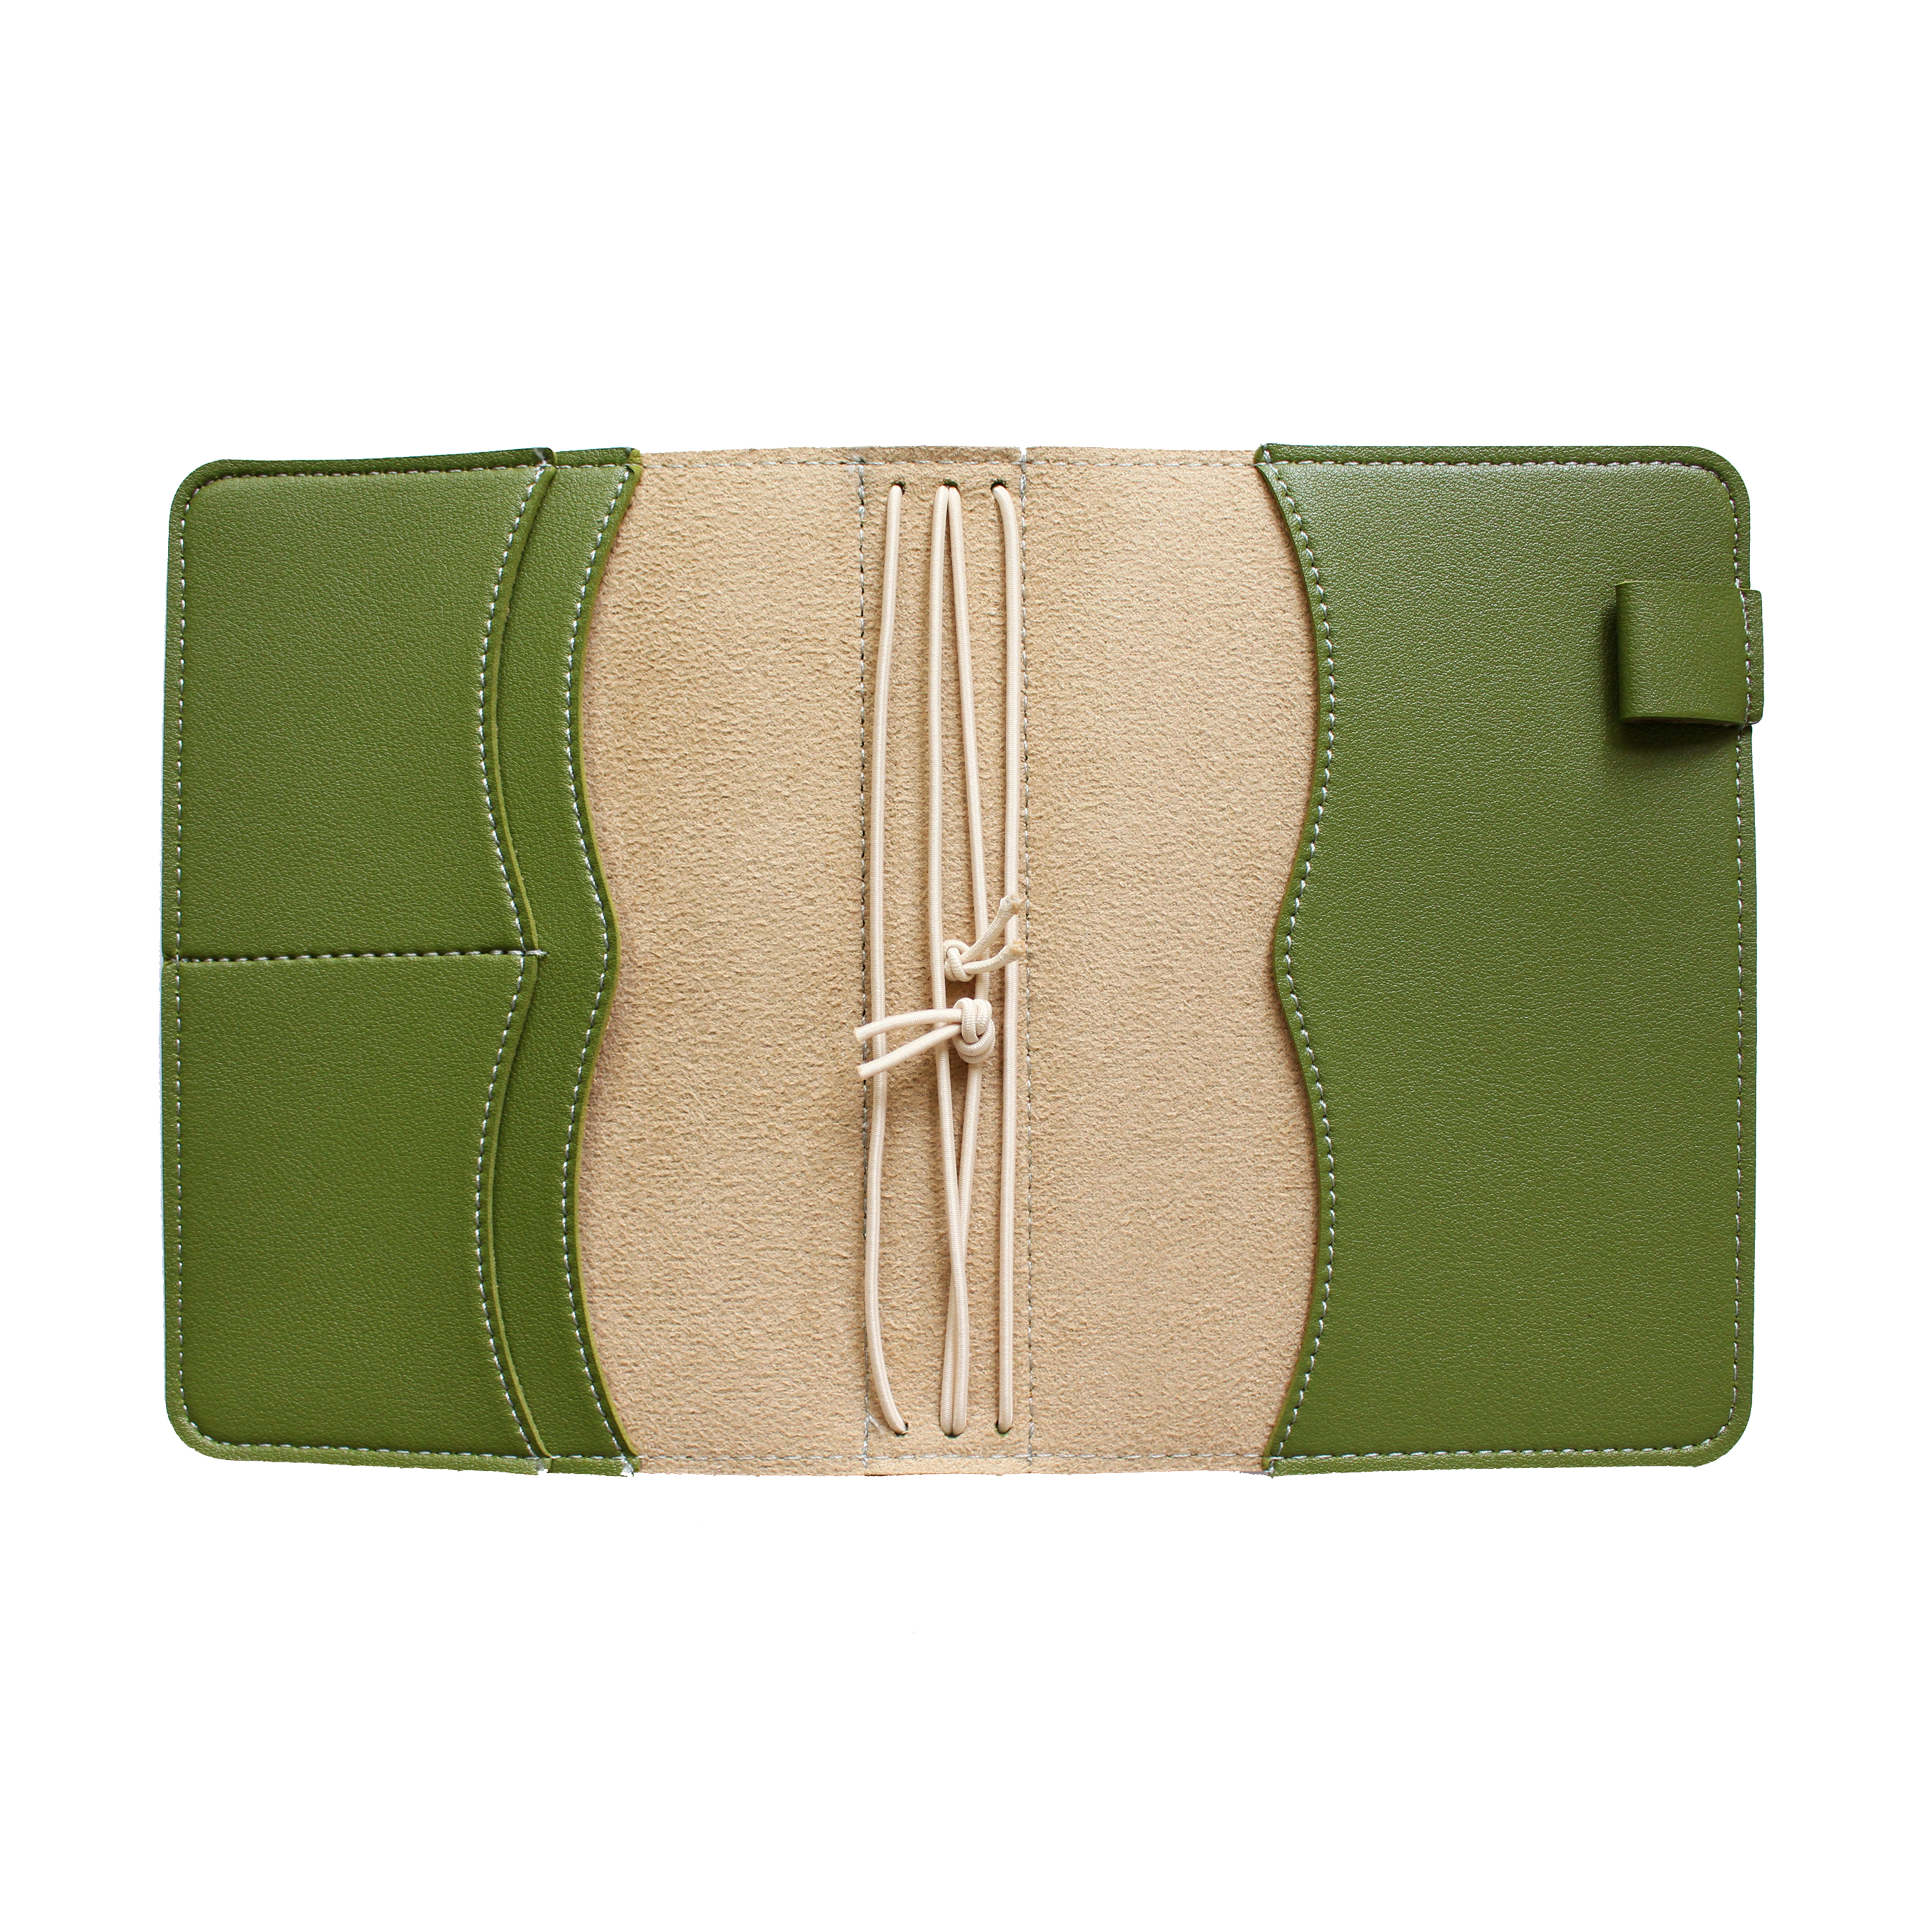 A6 Travelers Notebook - Evergreen